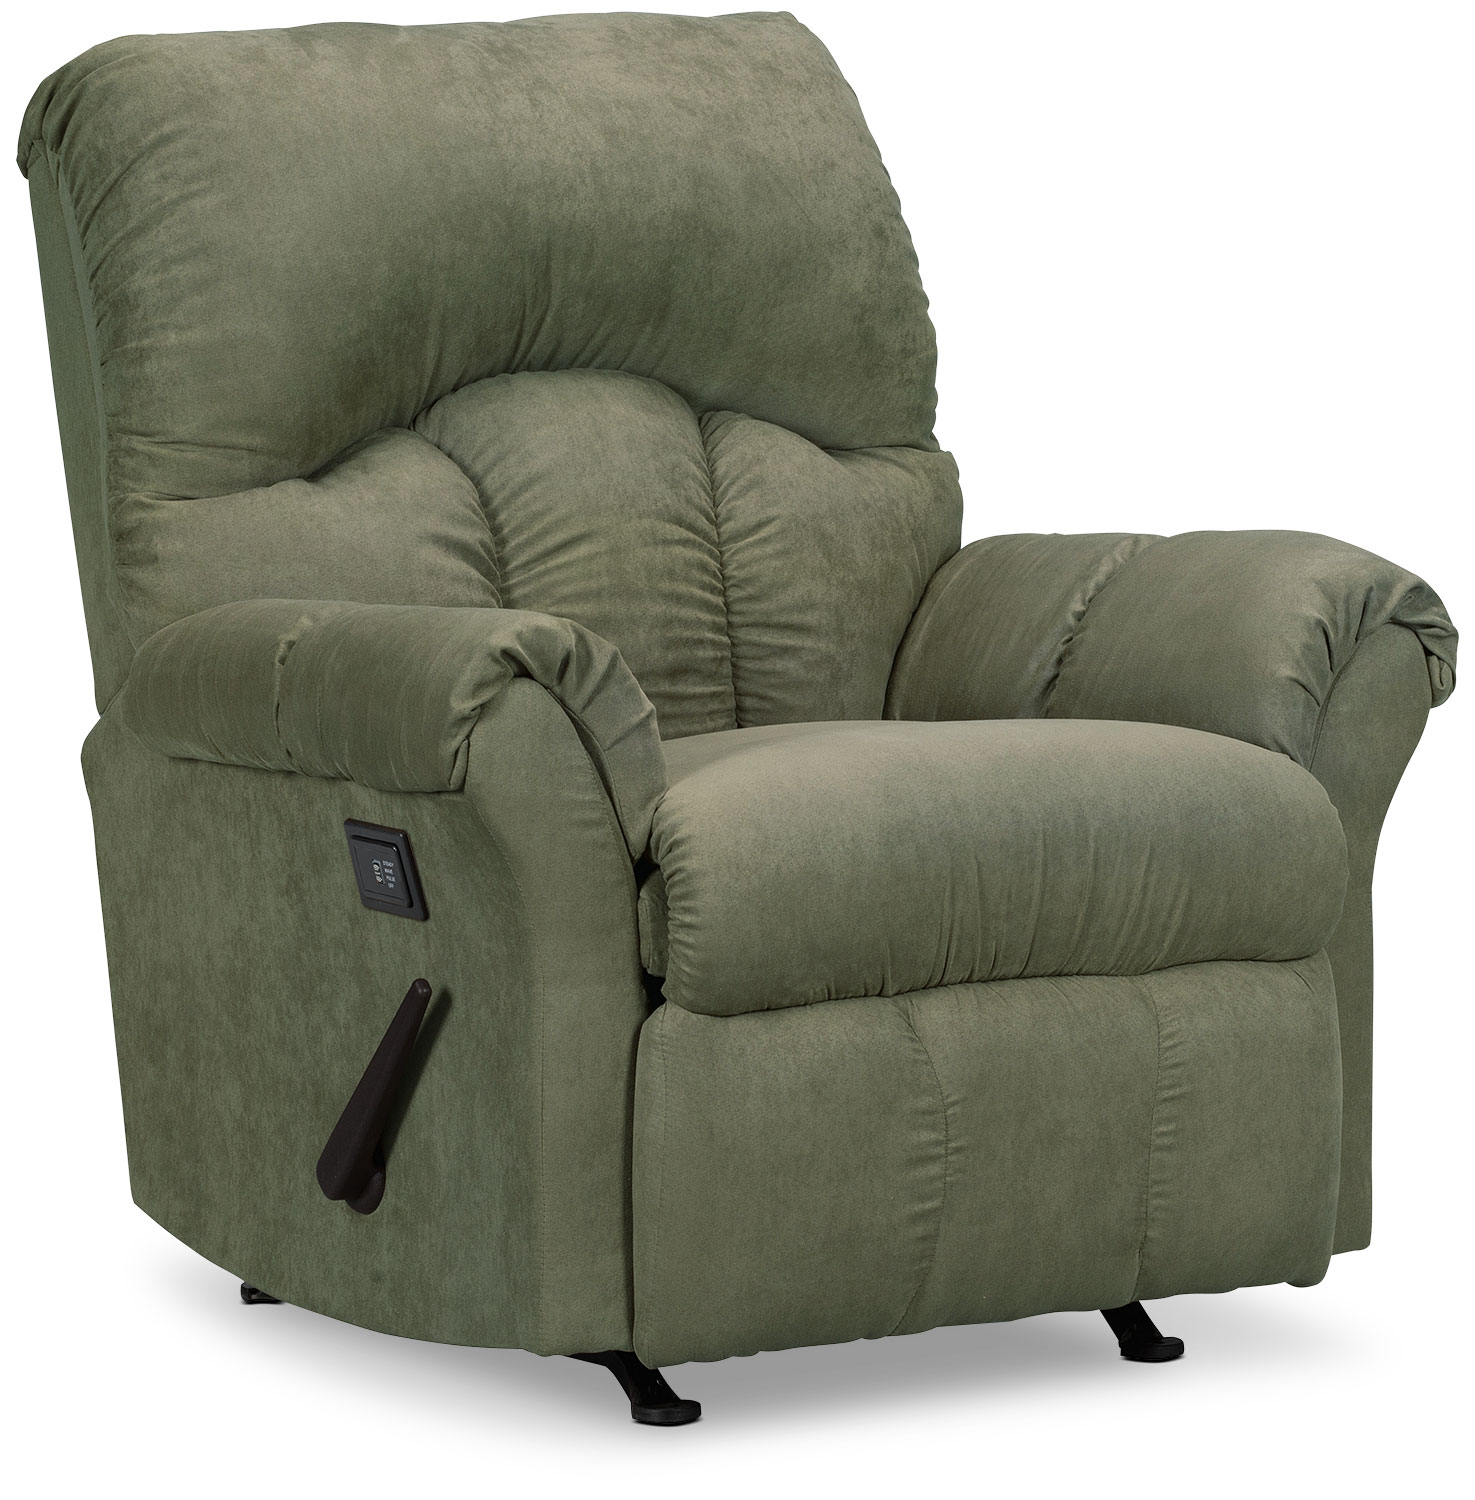 Living Room Furniture - Designed2B Recliner 6734 Microsuede Massage Chair - Fern